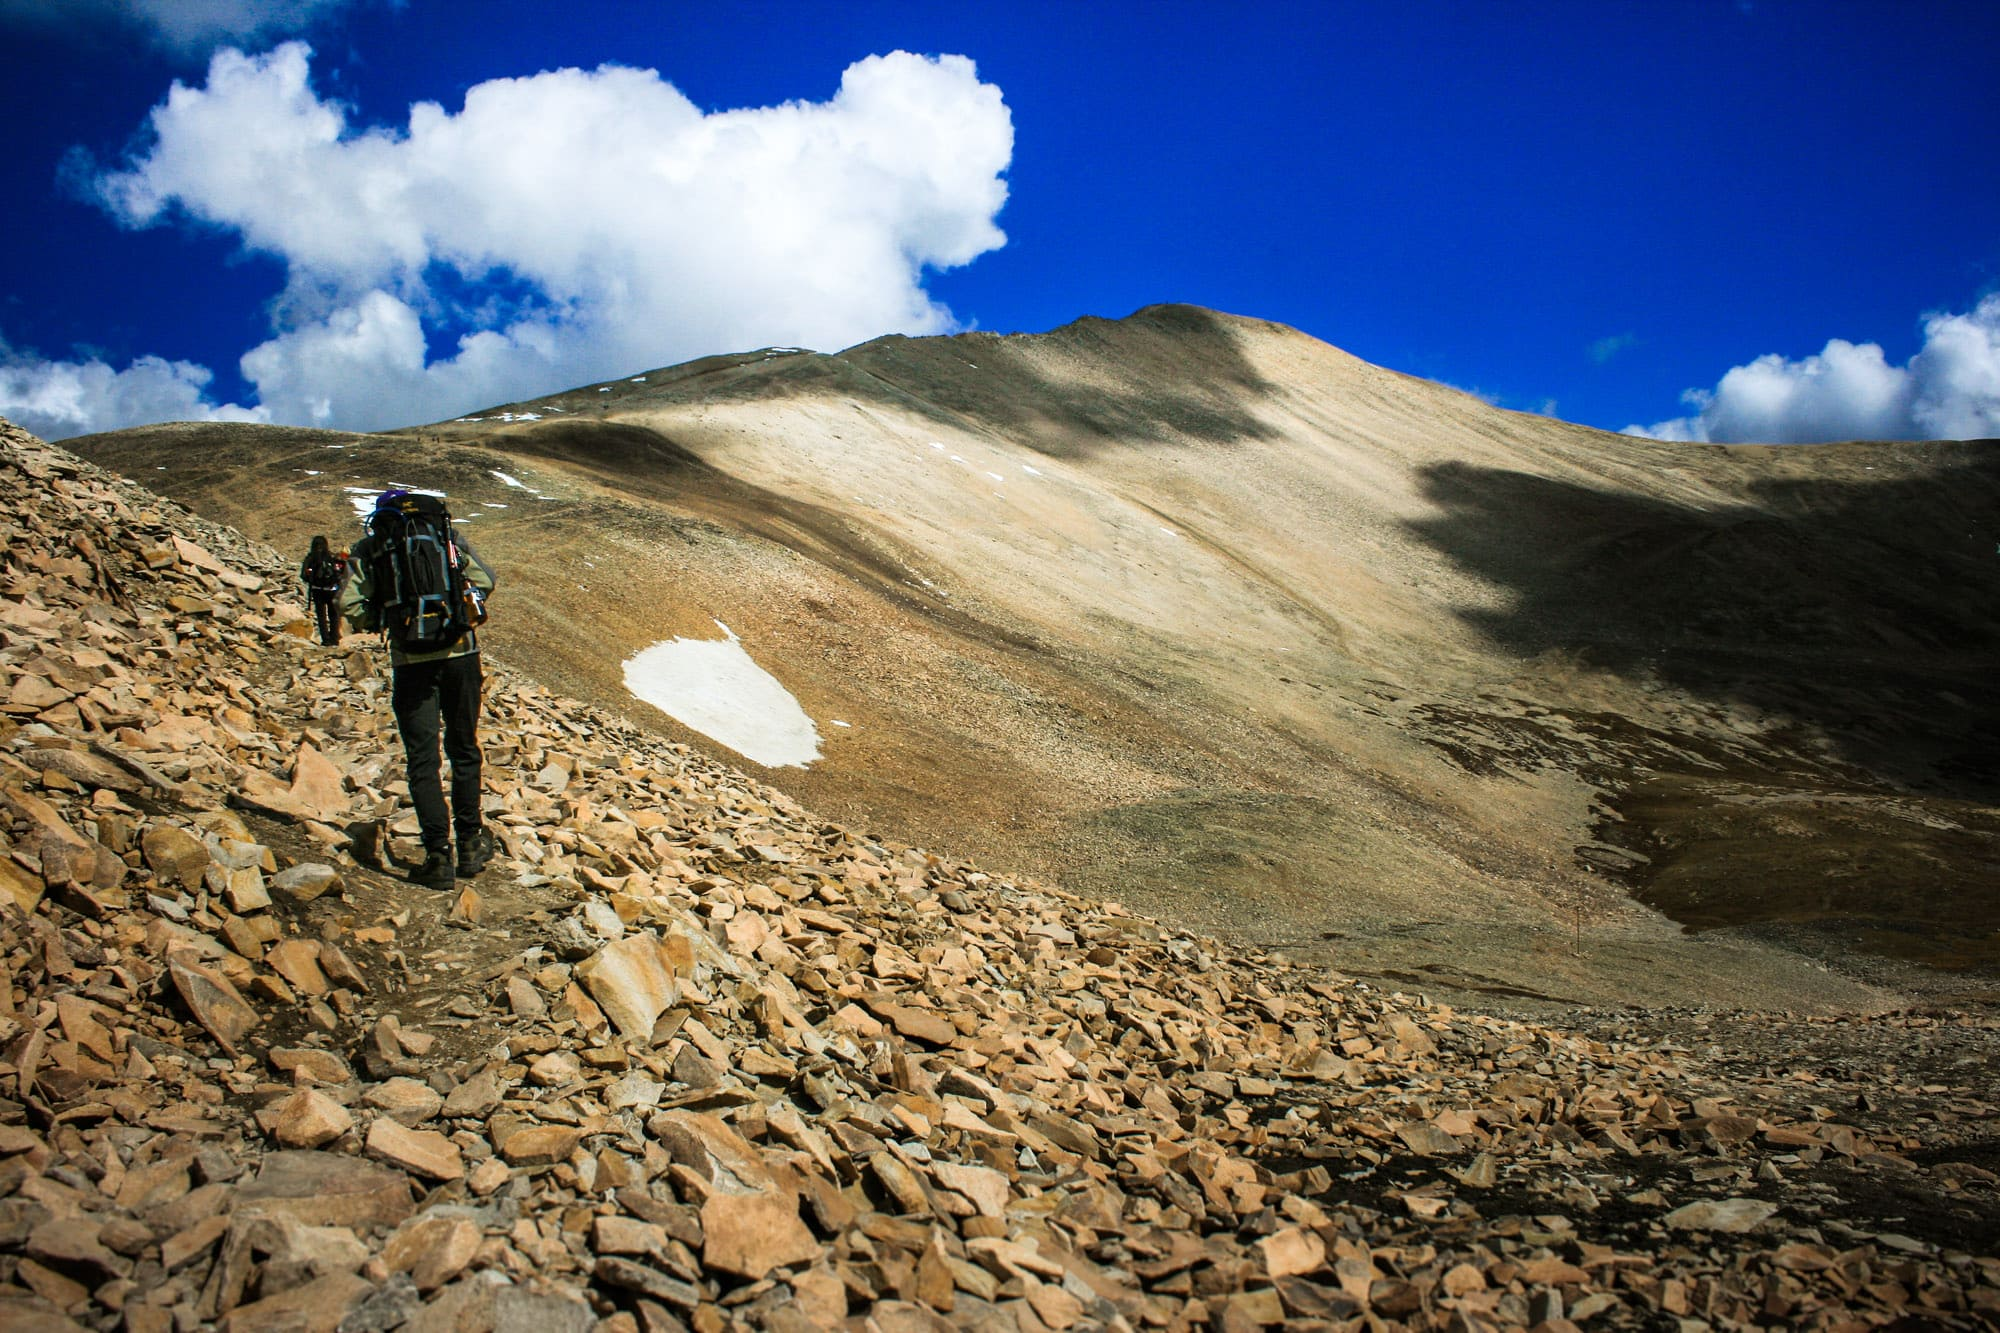 Hiking Mount Sherman - one of Colorado's best 14ers